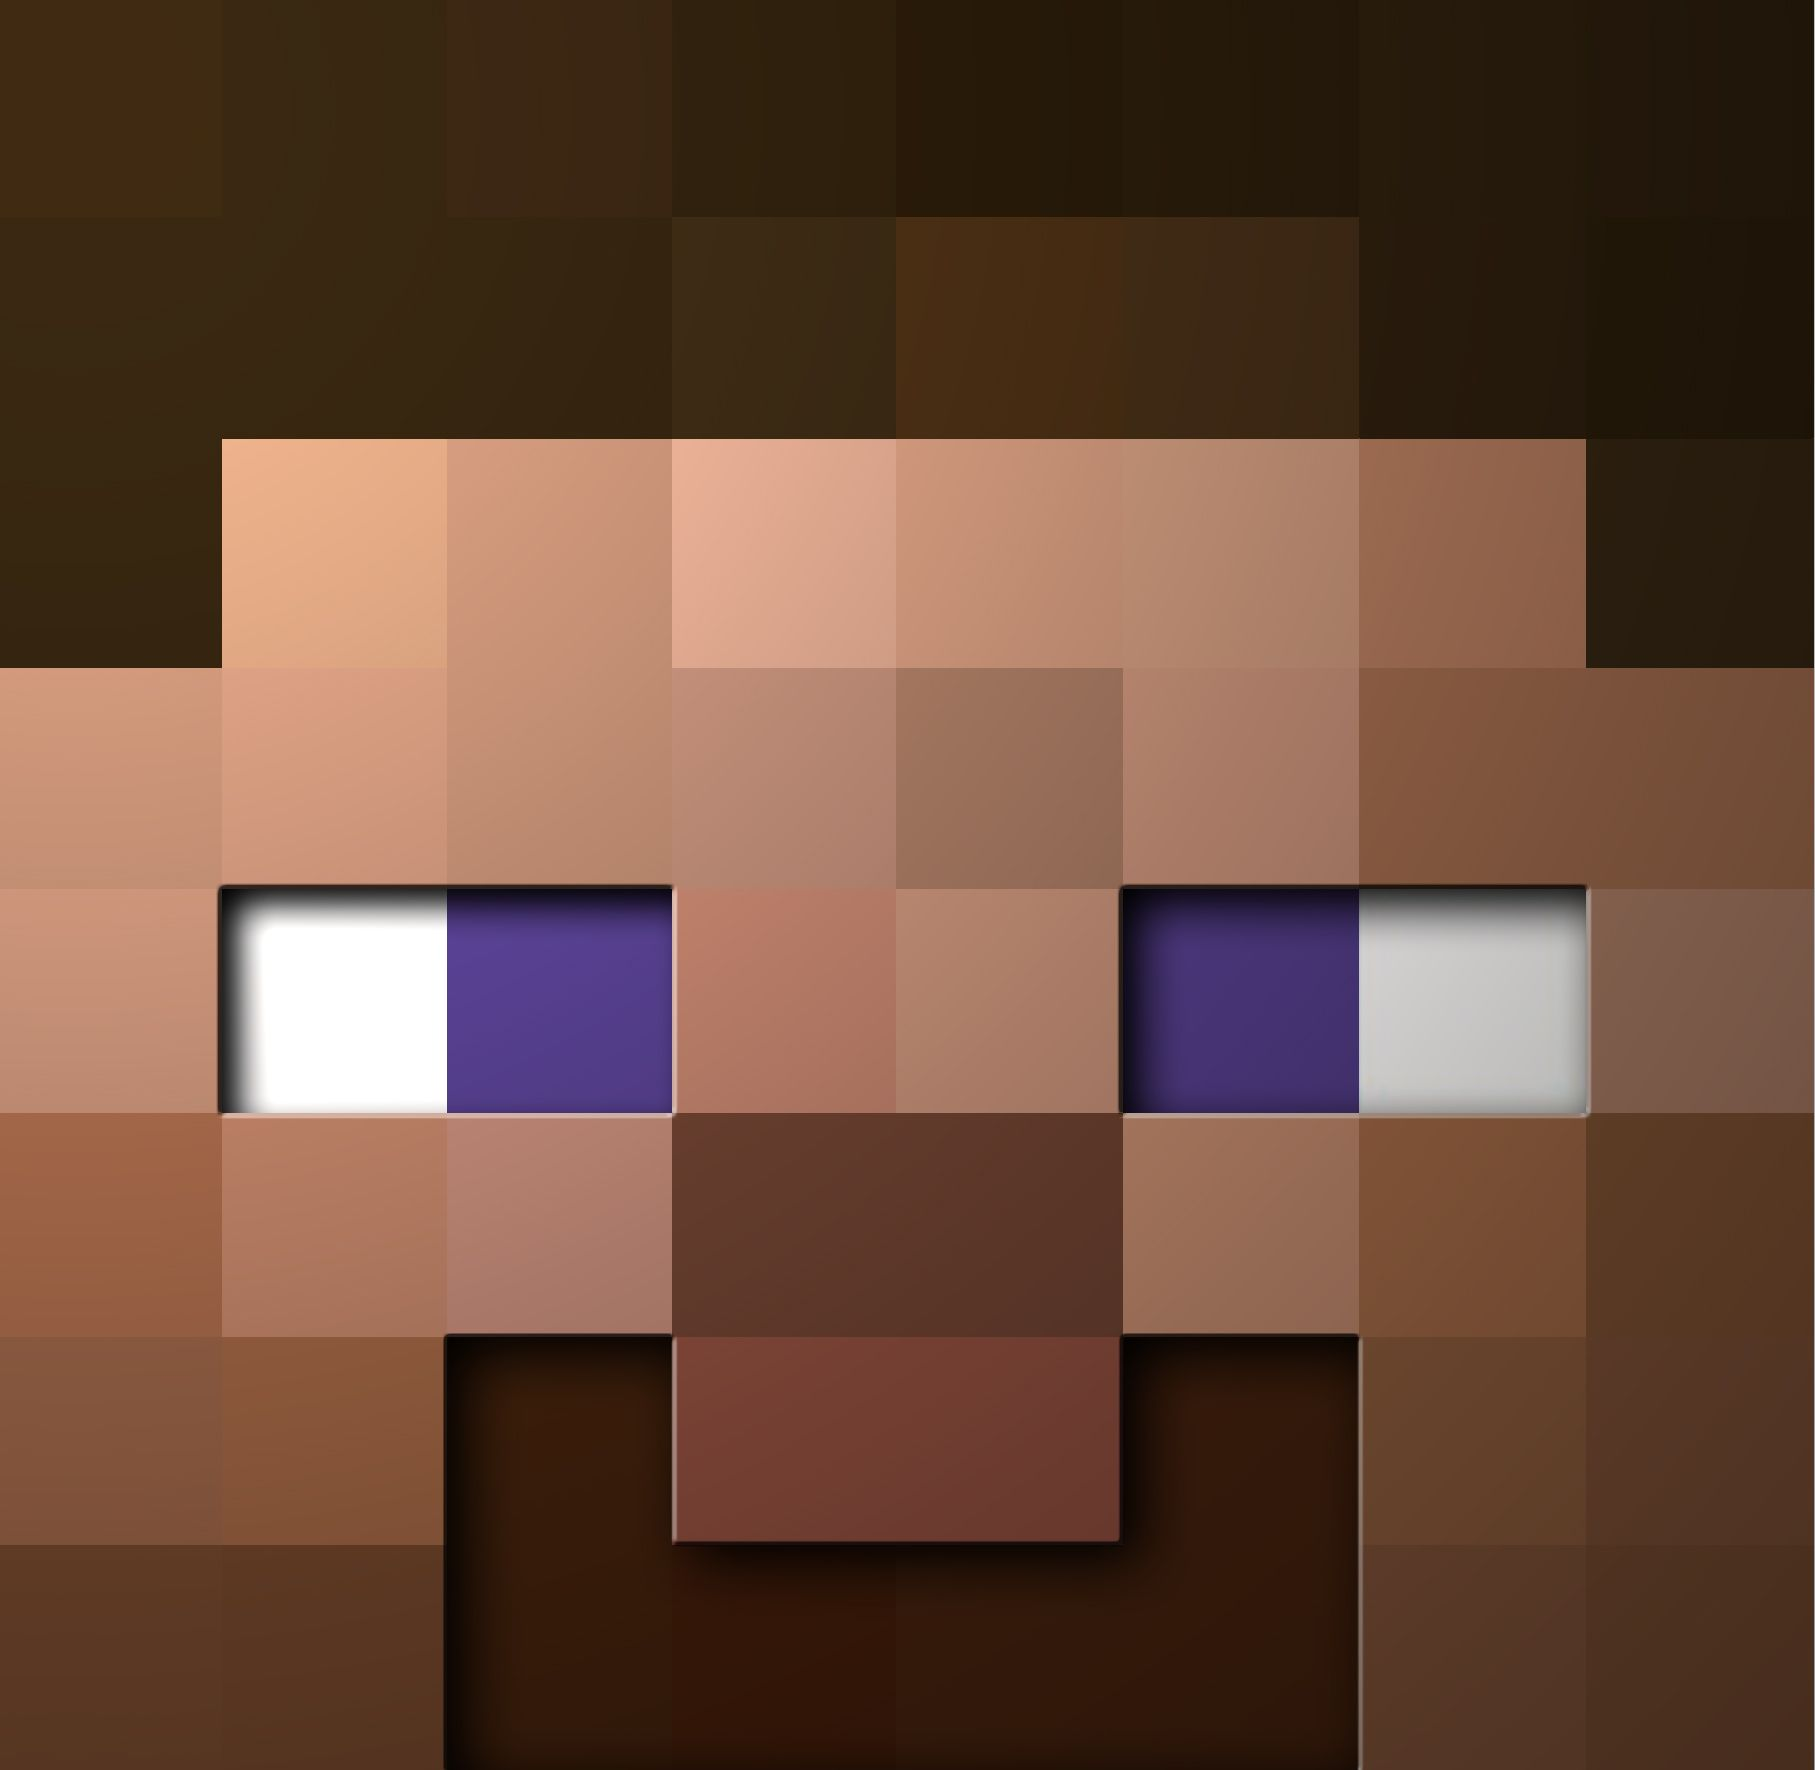 Steve Minecraft Side Viewviewing Gallery For Steve Minecraft